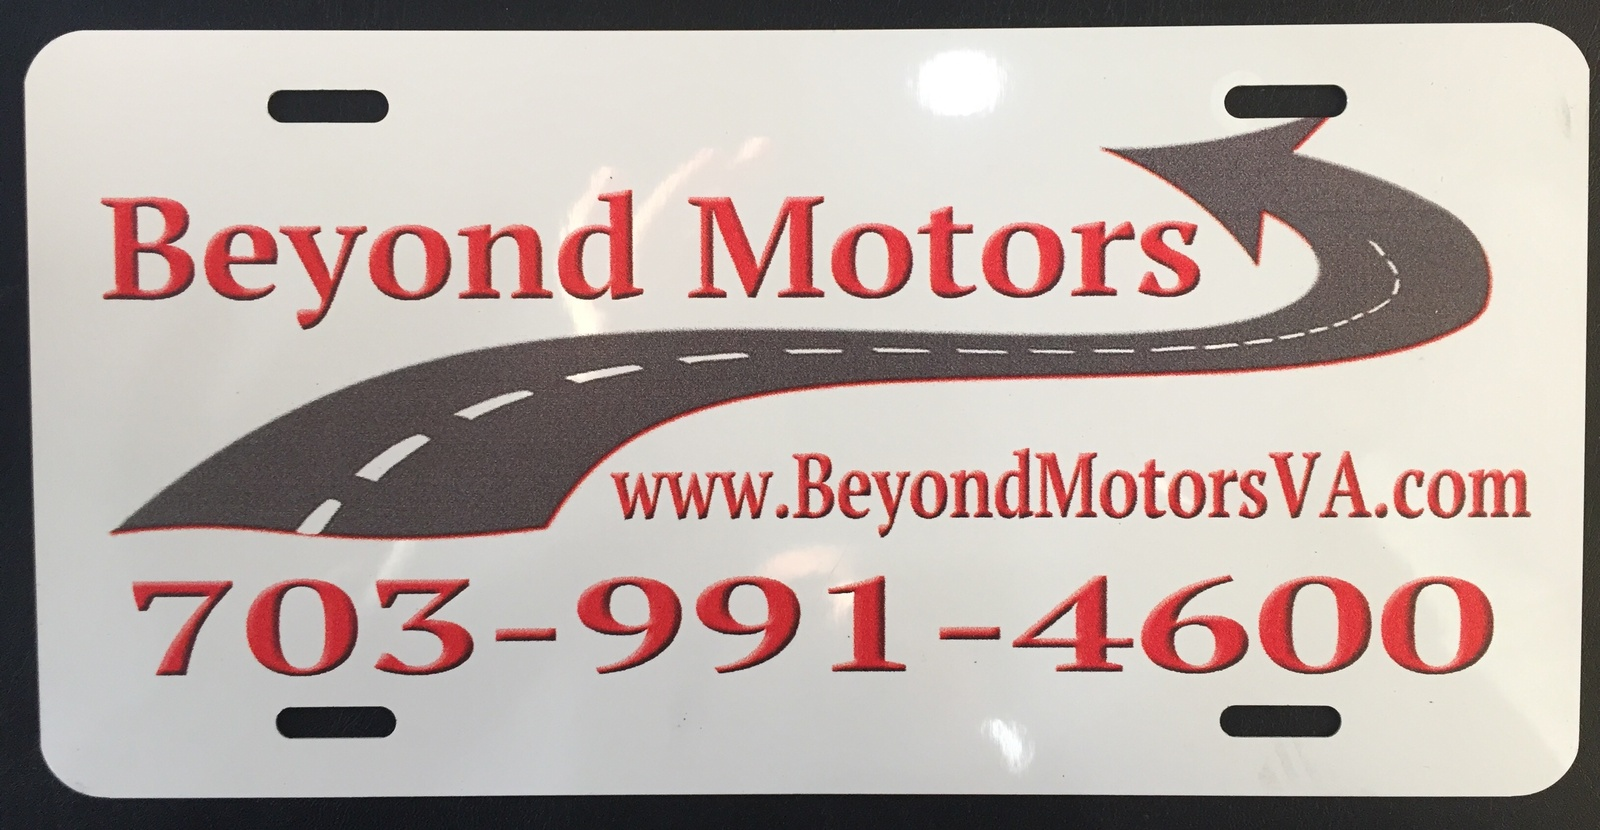 Beyond Motors Manassas Va Read Consumer Reviews